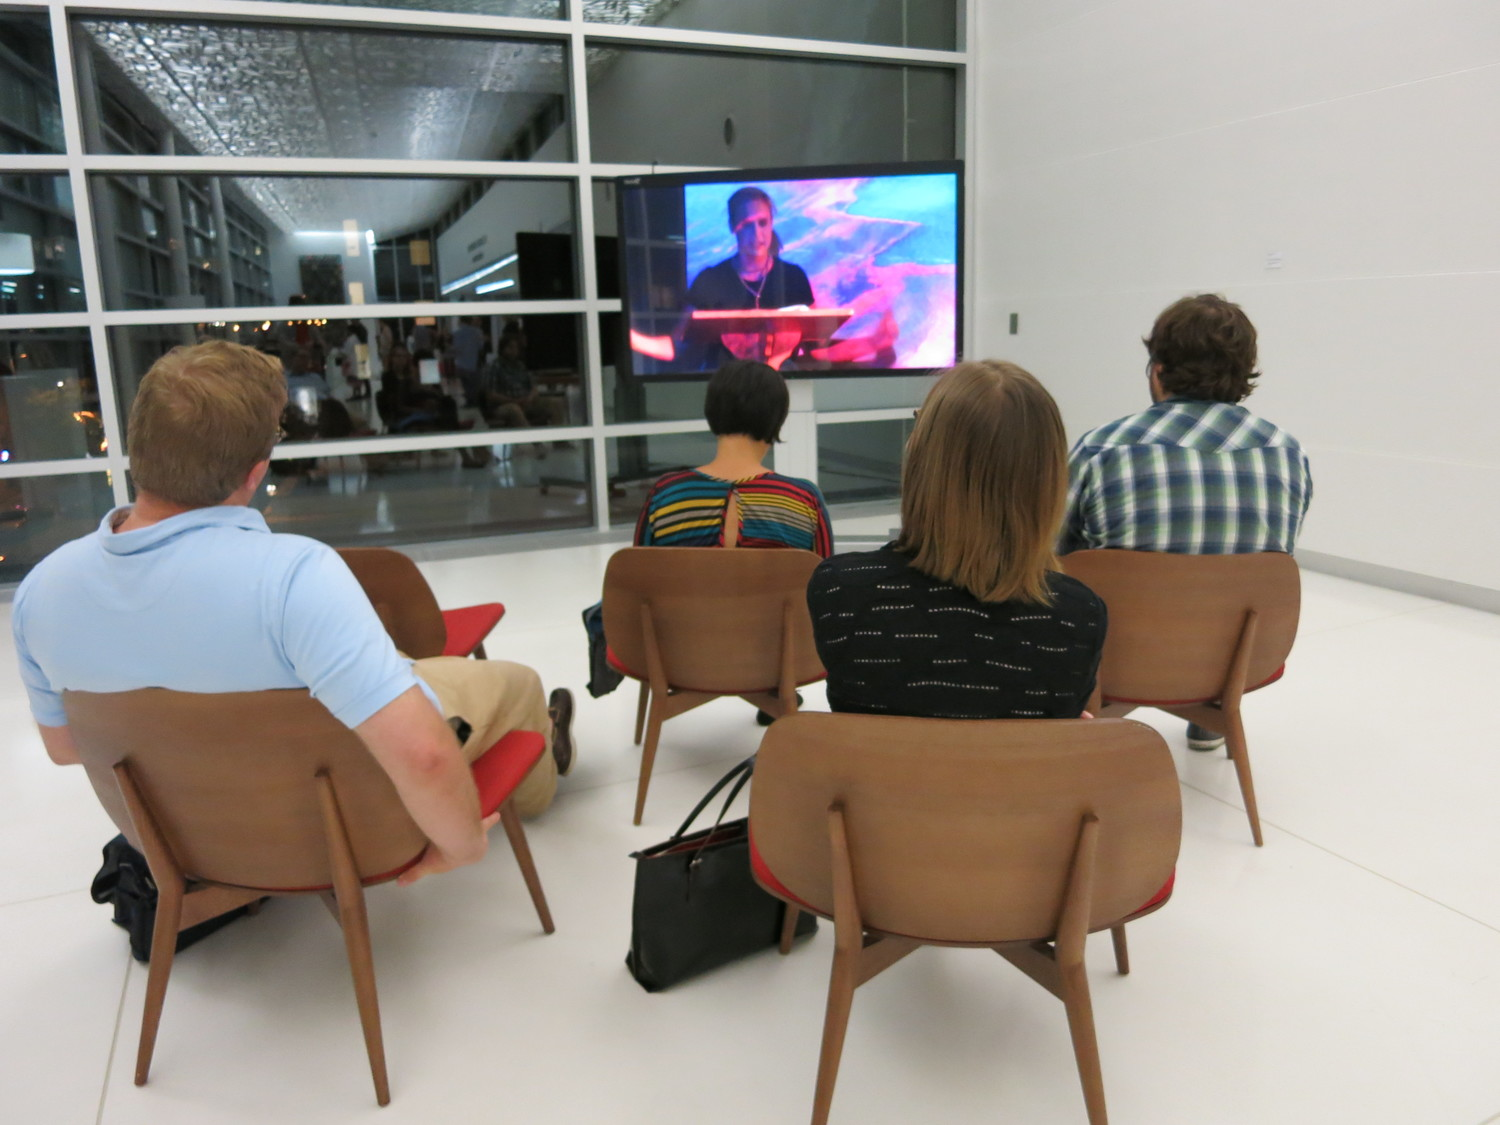 As part of the art exhibition series, The Bubbler selected a variety of video artist to display their works at the library. This above photo features Katie Schaag's work.